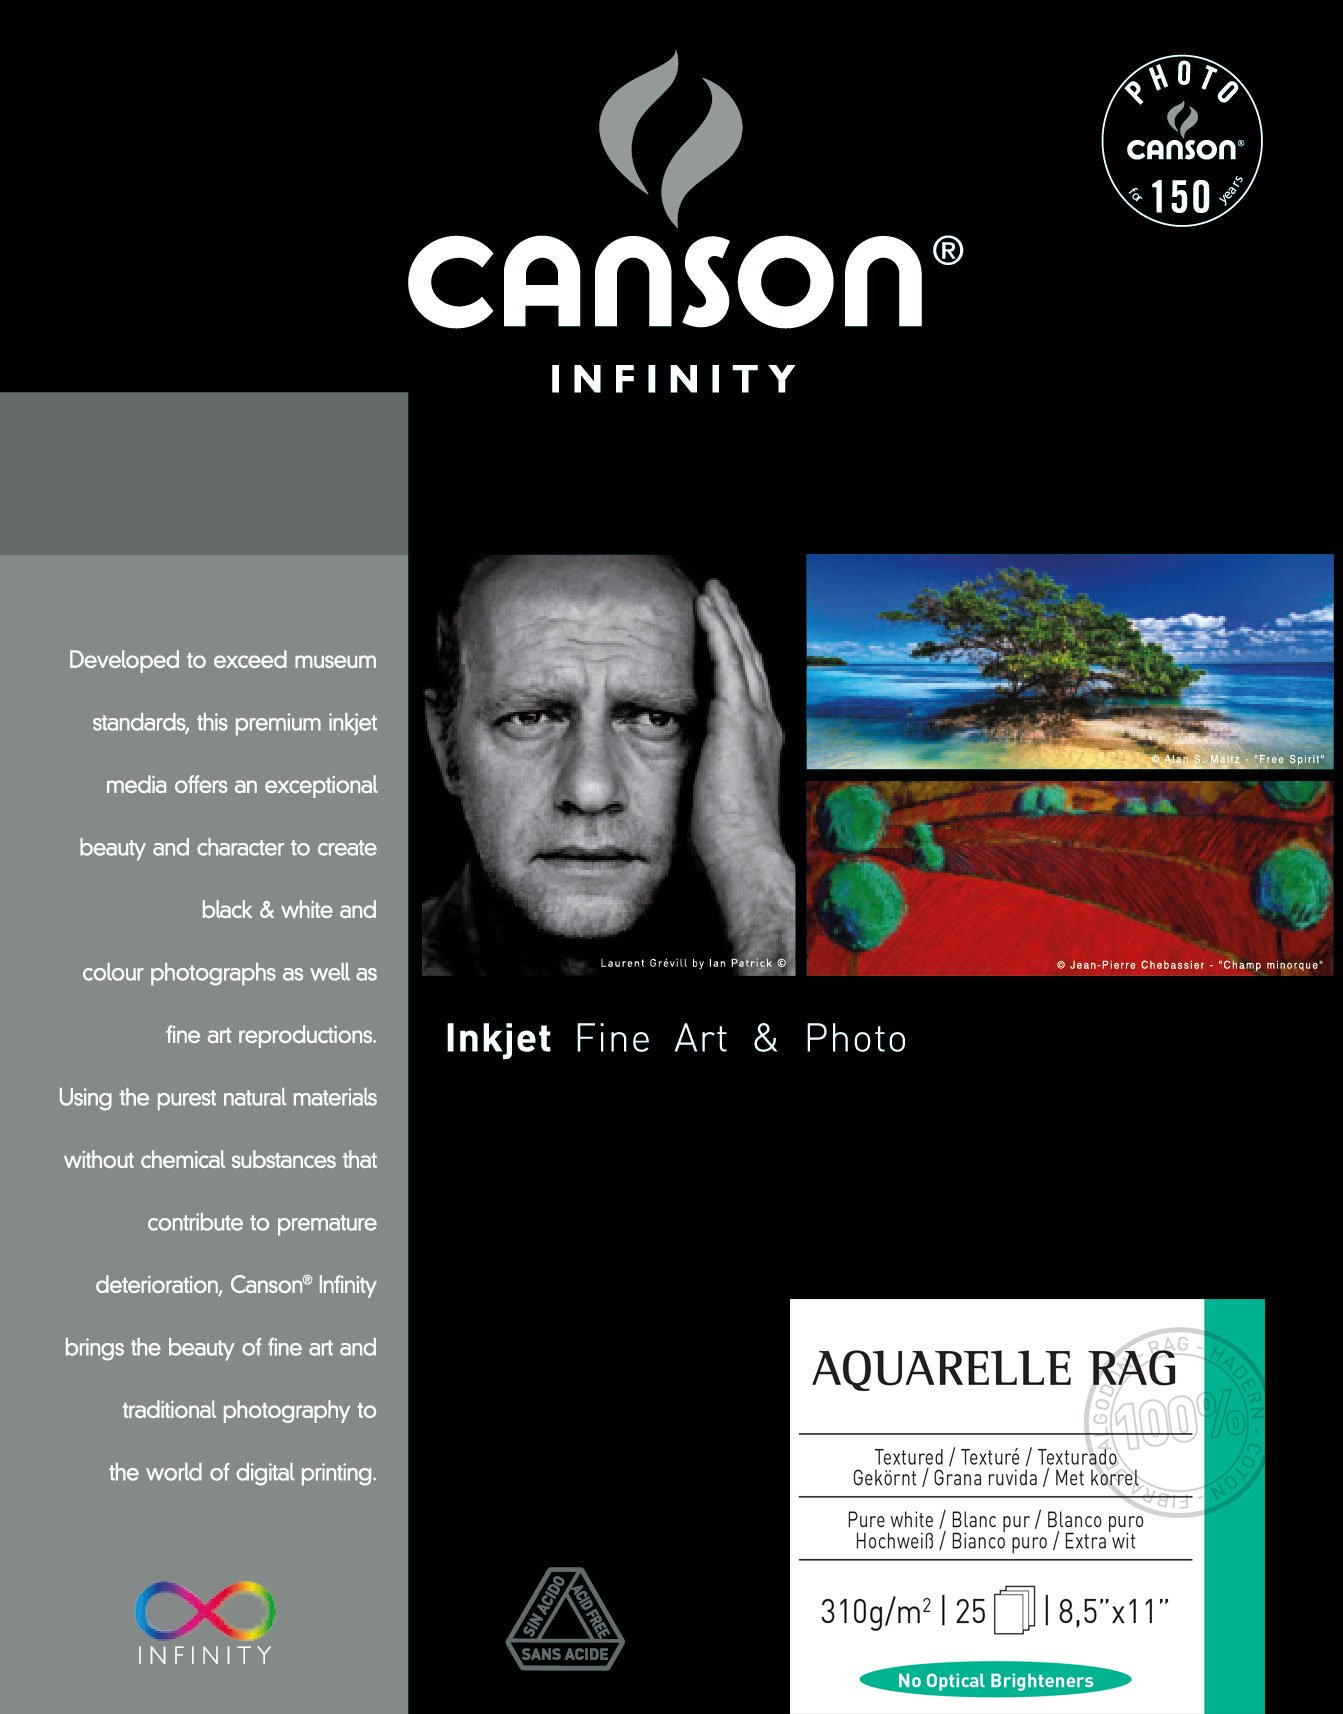 Canson Infinity Aquarelle Rag Fine Art Watercolor Paper, 8.5 x 11 Inch, White, 25 Sheets by Canson